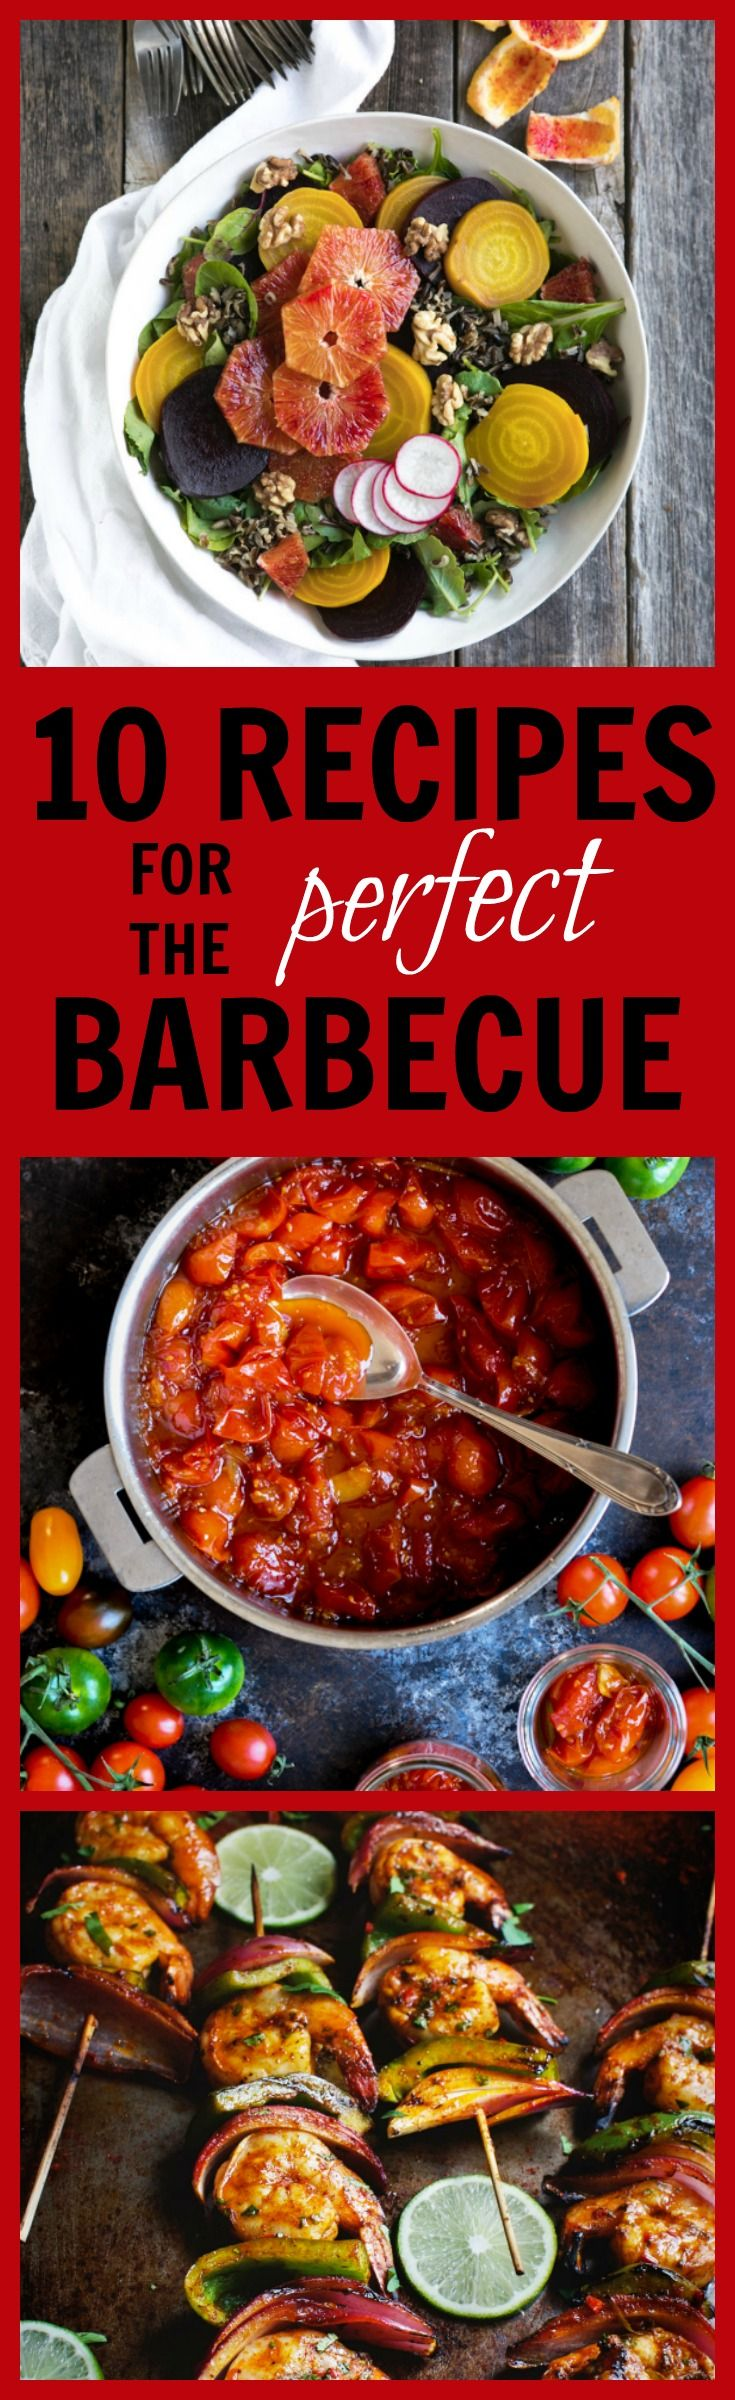 10 Recipes for the Perfect Barbecue Menu